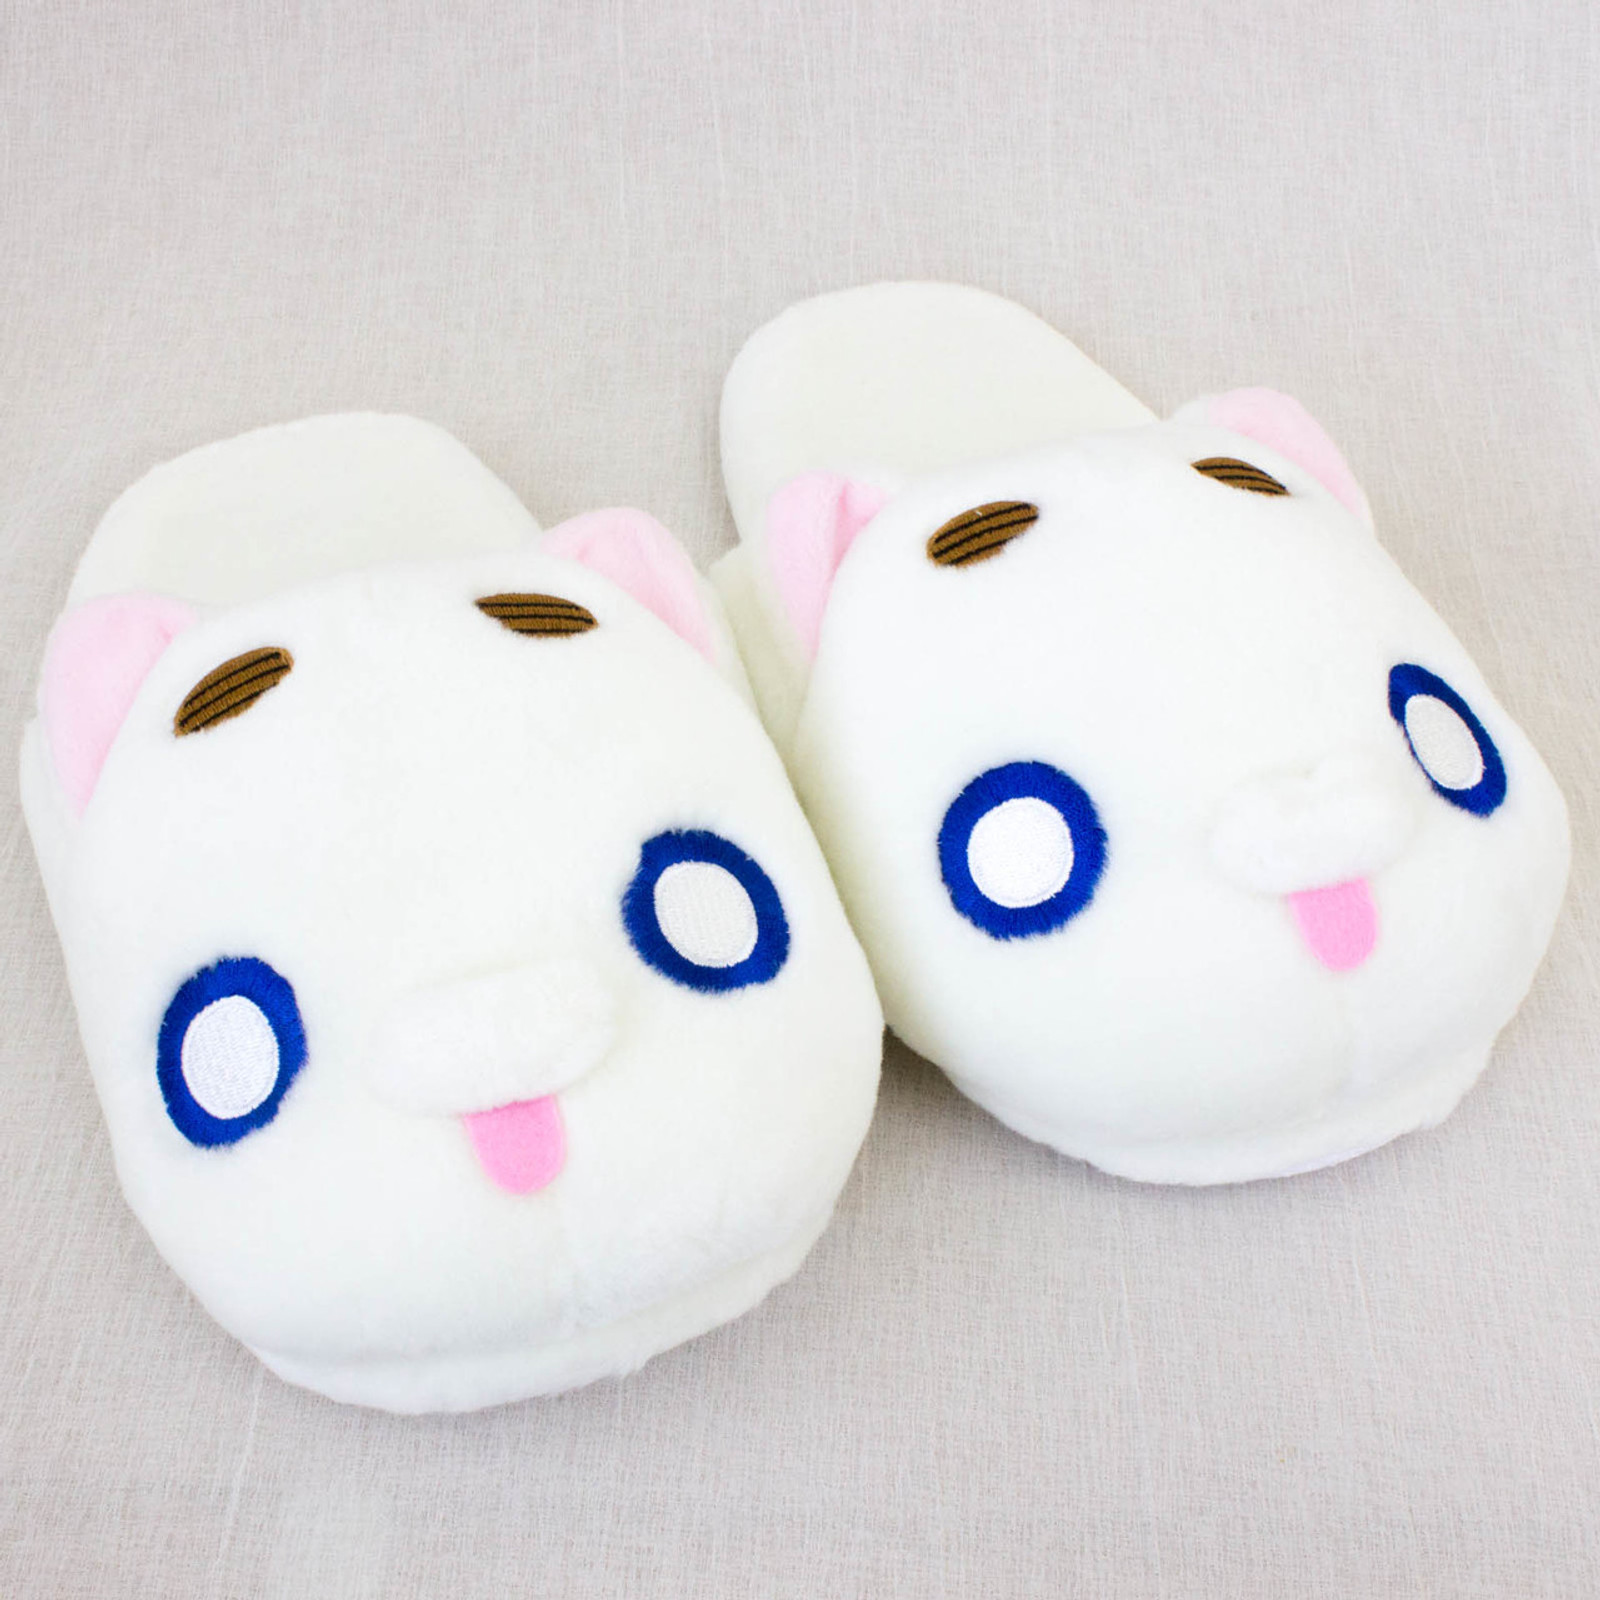 RARE! ARIA President Aria Pokoteng Pair of Slippers JAPAN ANIME MANGA